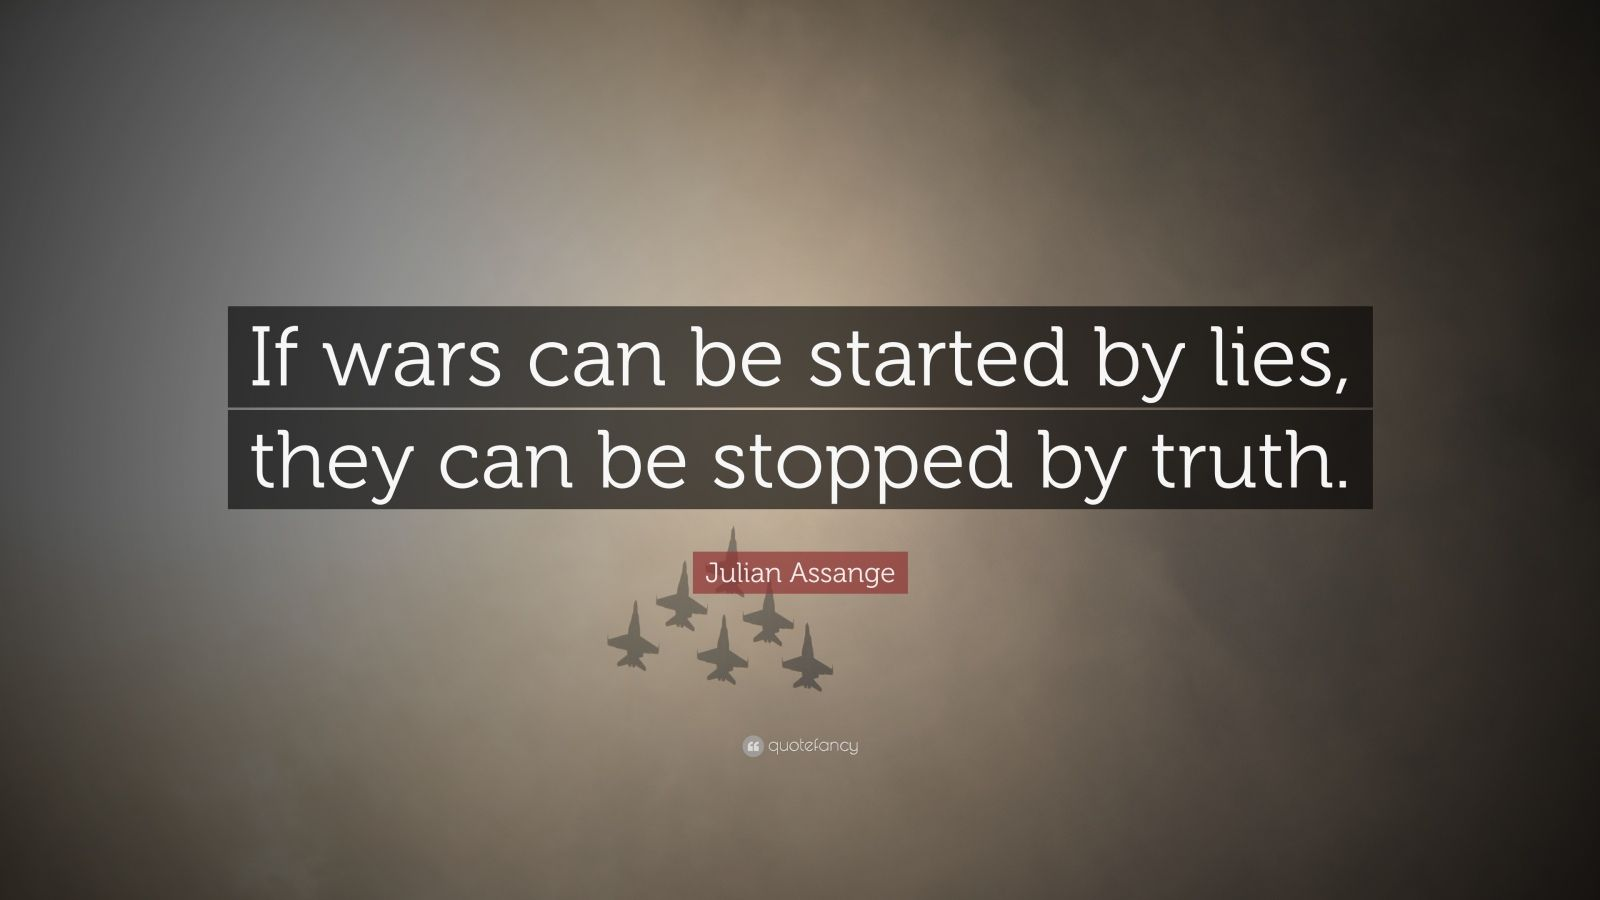 "Quotes About War: ""If wars can be started by lies, they can be stopped by truth."" — Julian Assange"